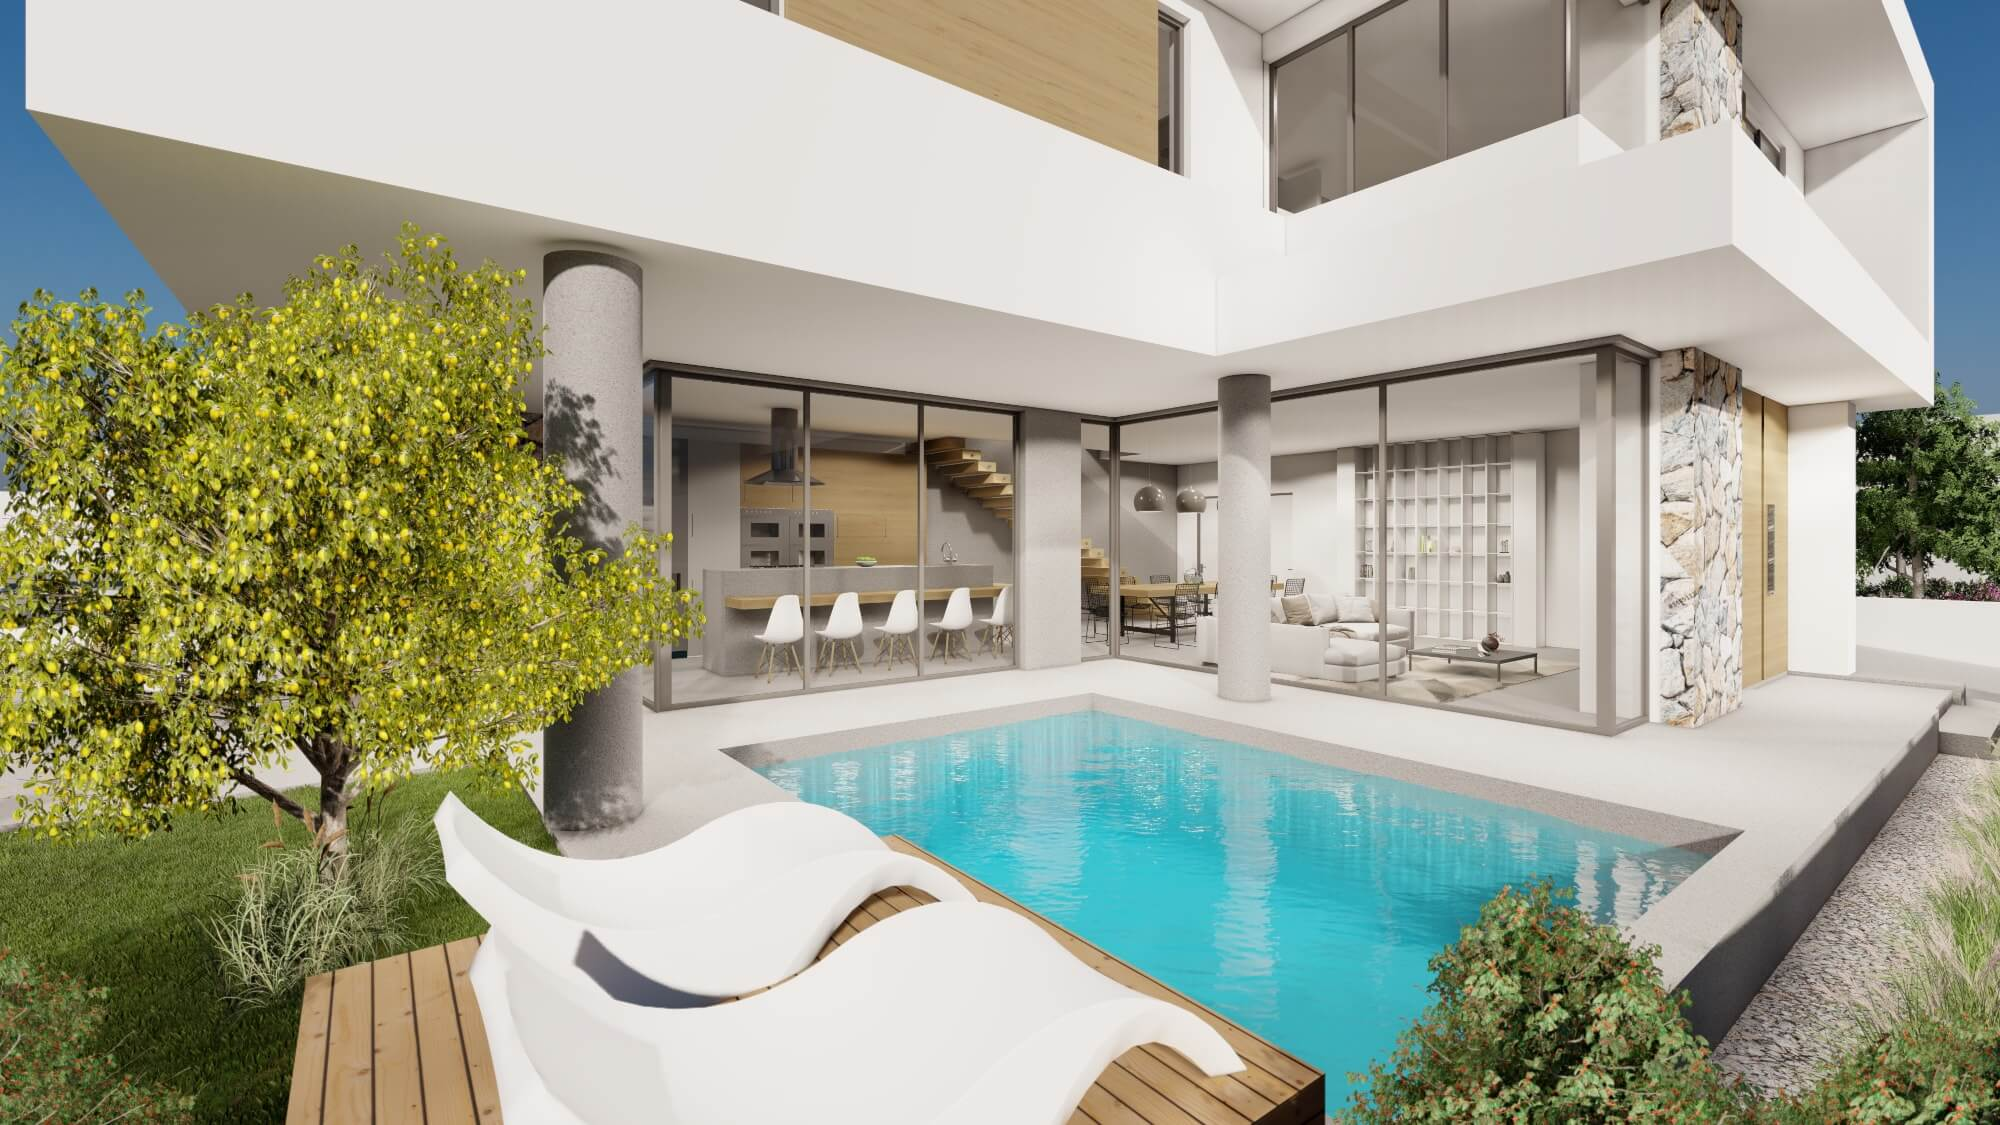 Private-residence-in-Ormidia-swimming-pool-architecture-visualization